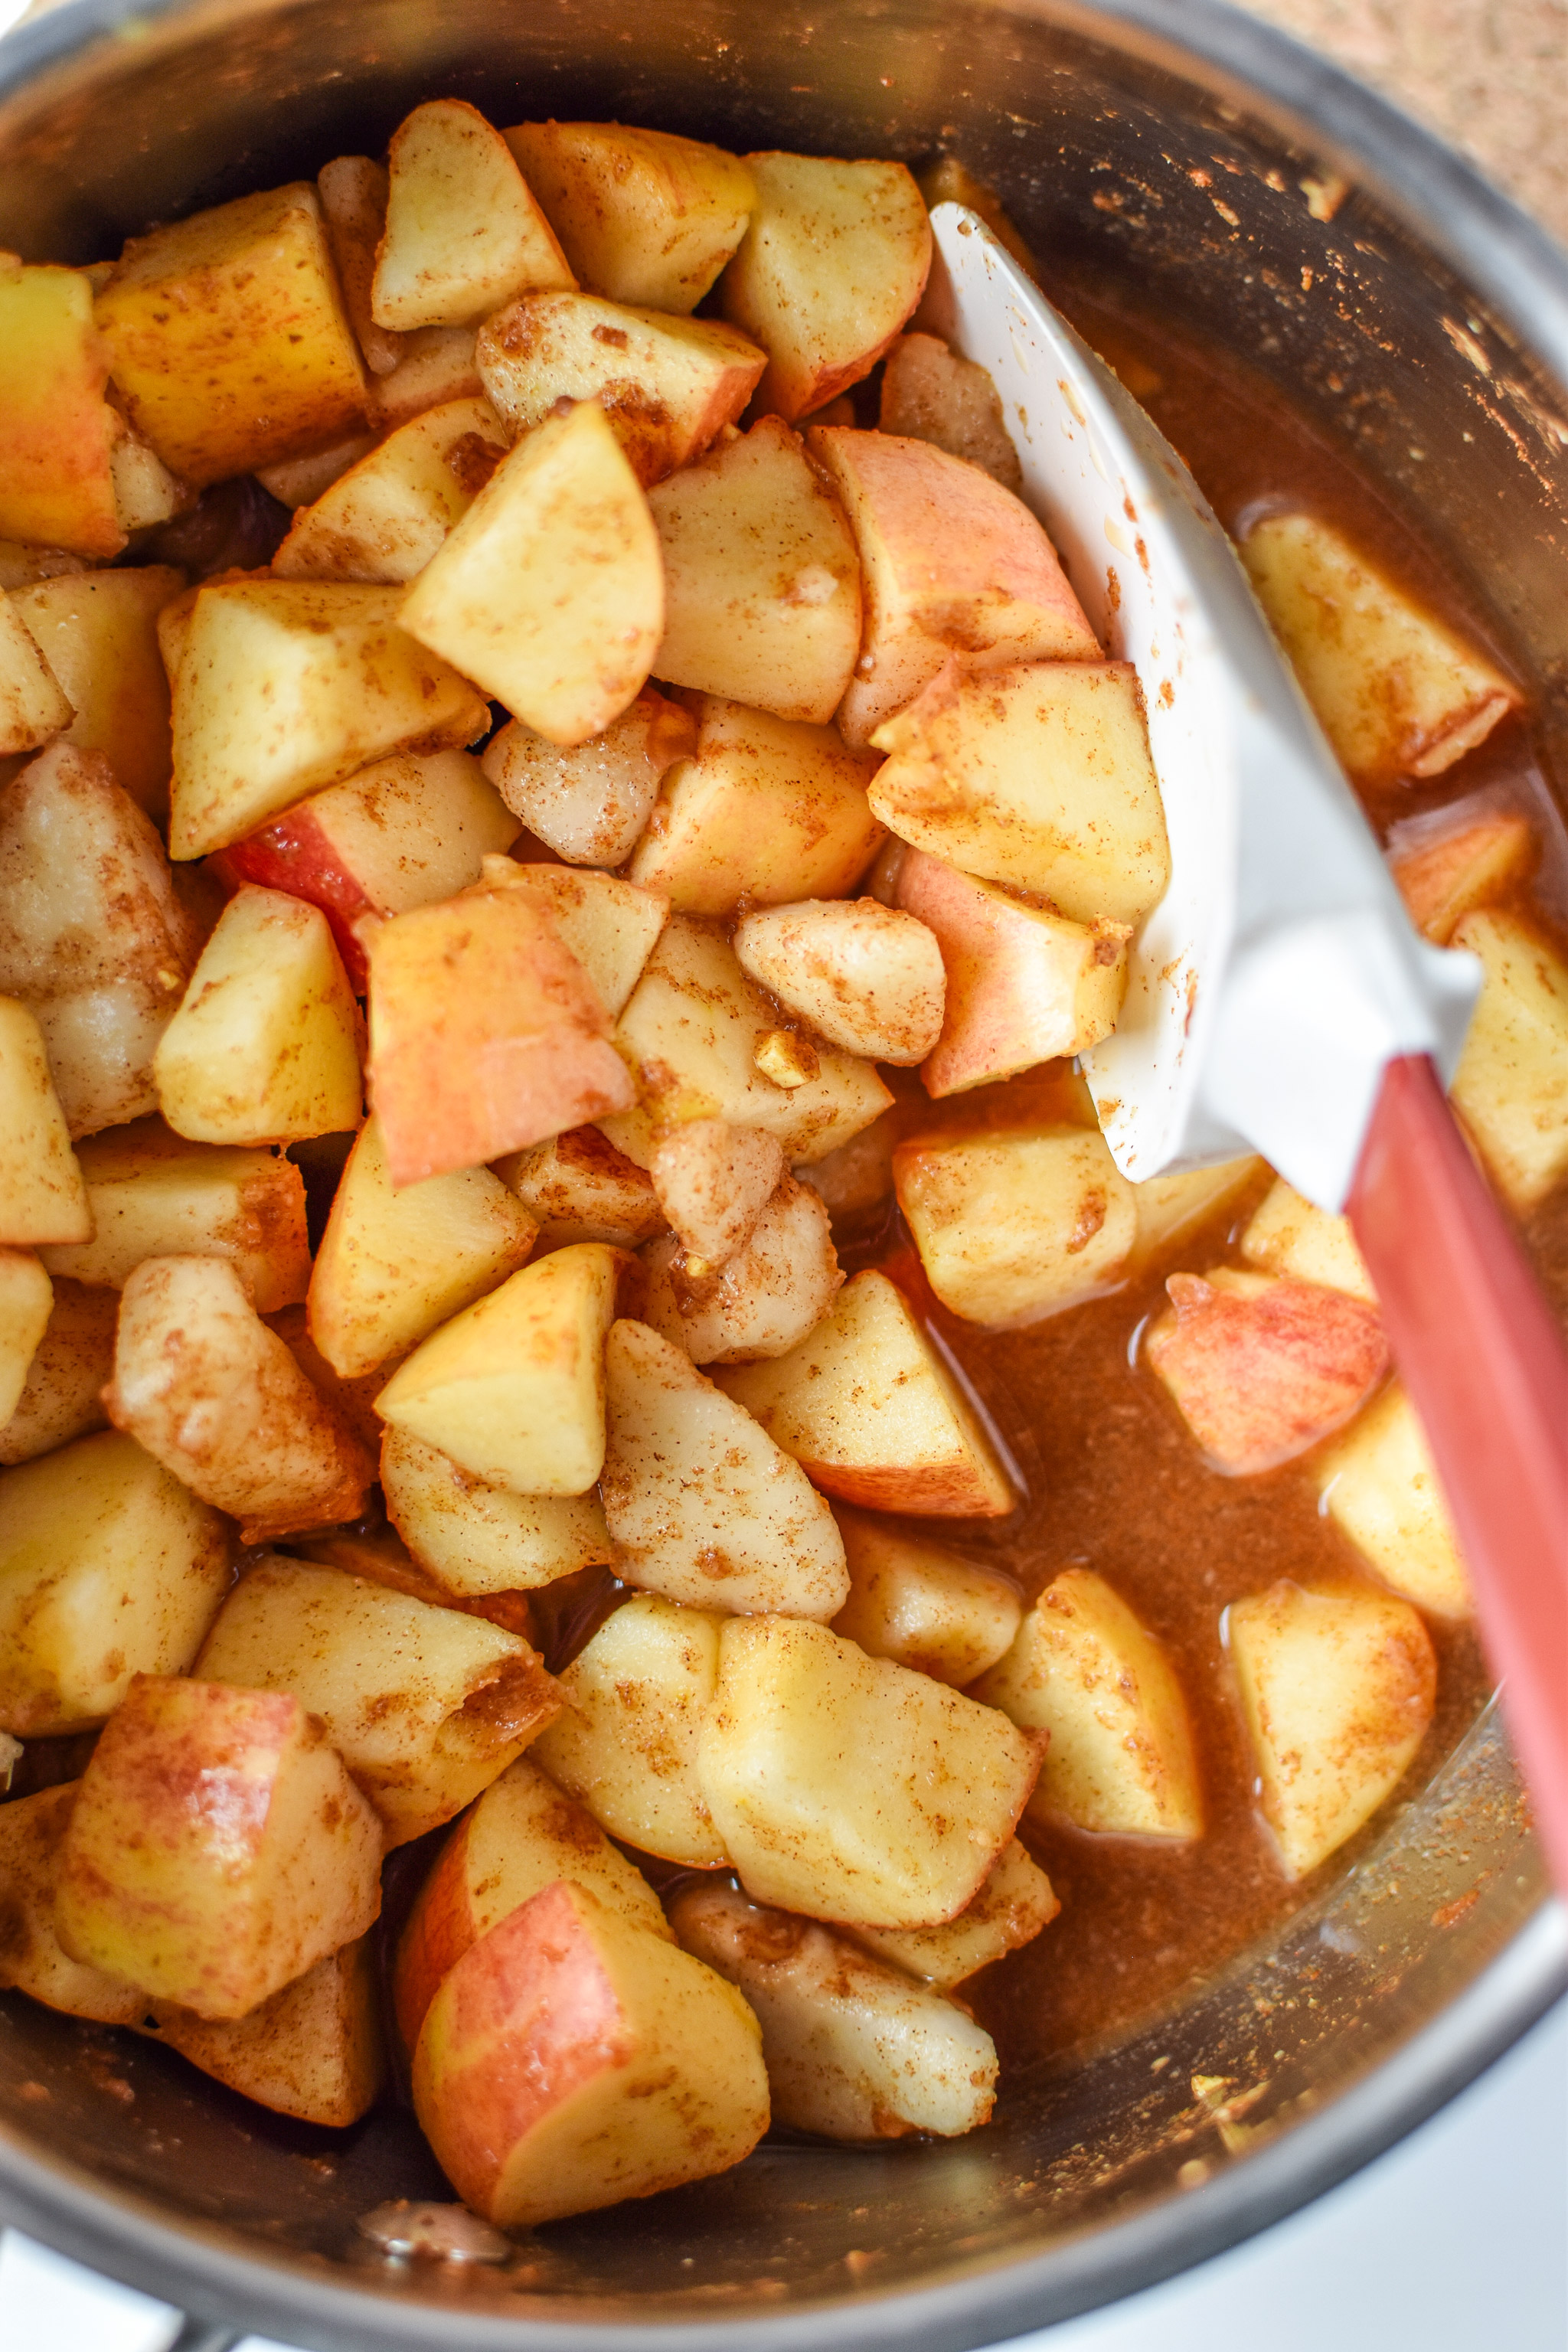 Mixed apples, pears and cinnamon in water for the Ginger Pear Cinnamon Applesauce